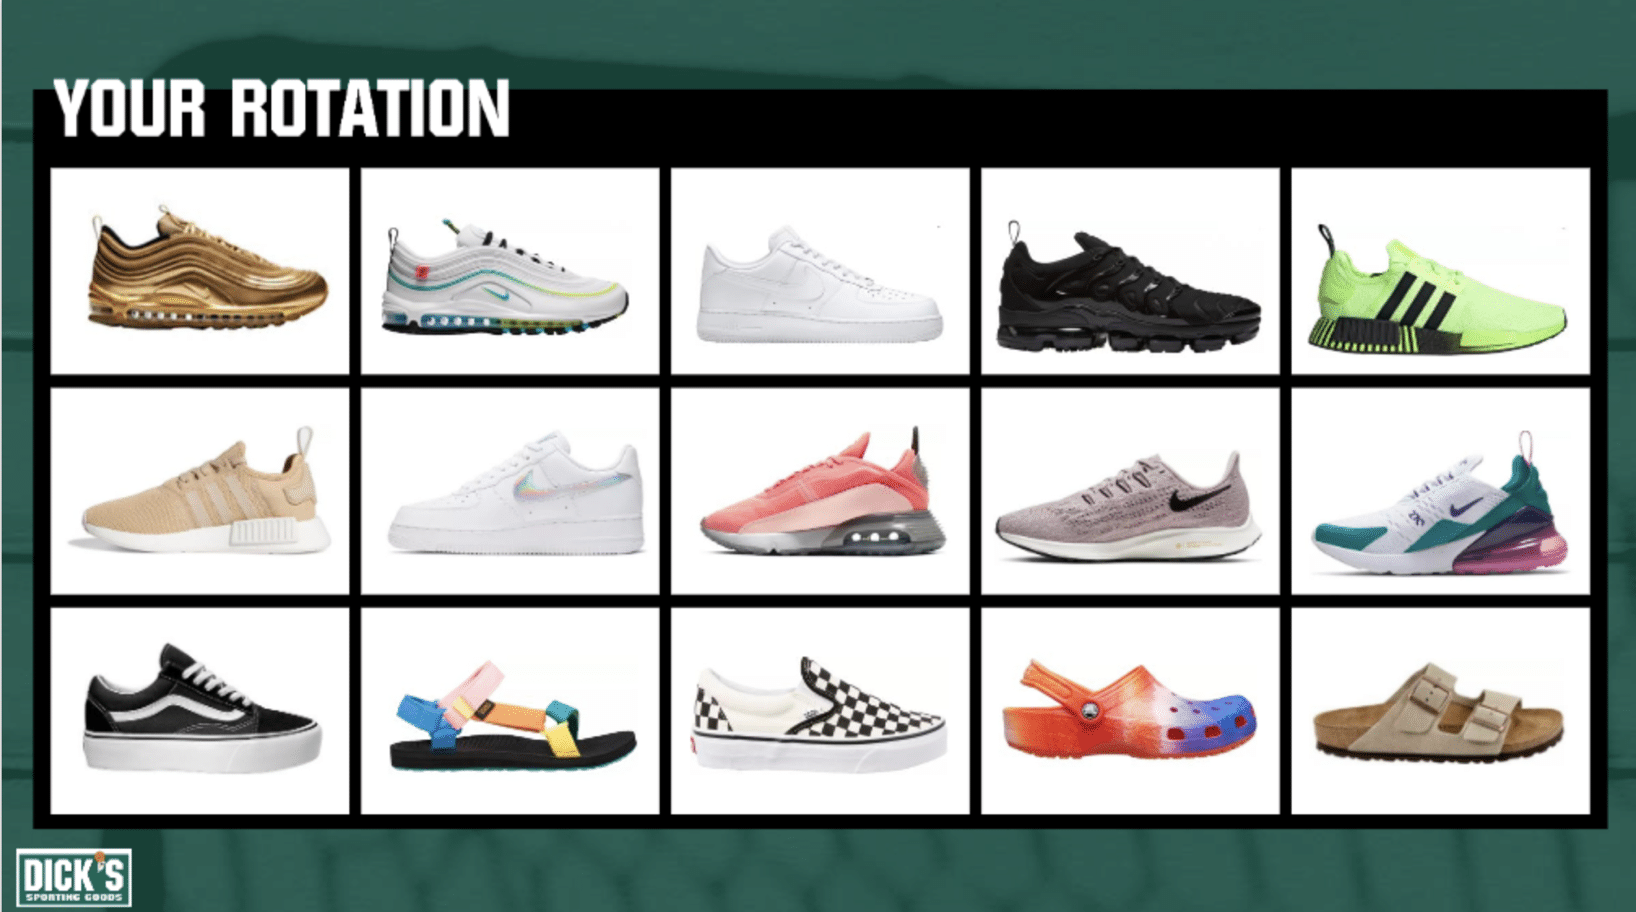 Dick's footwear options